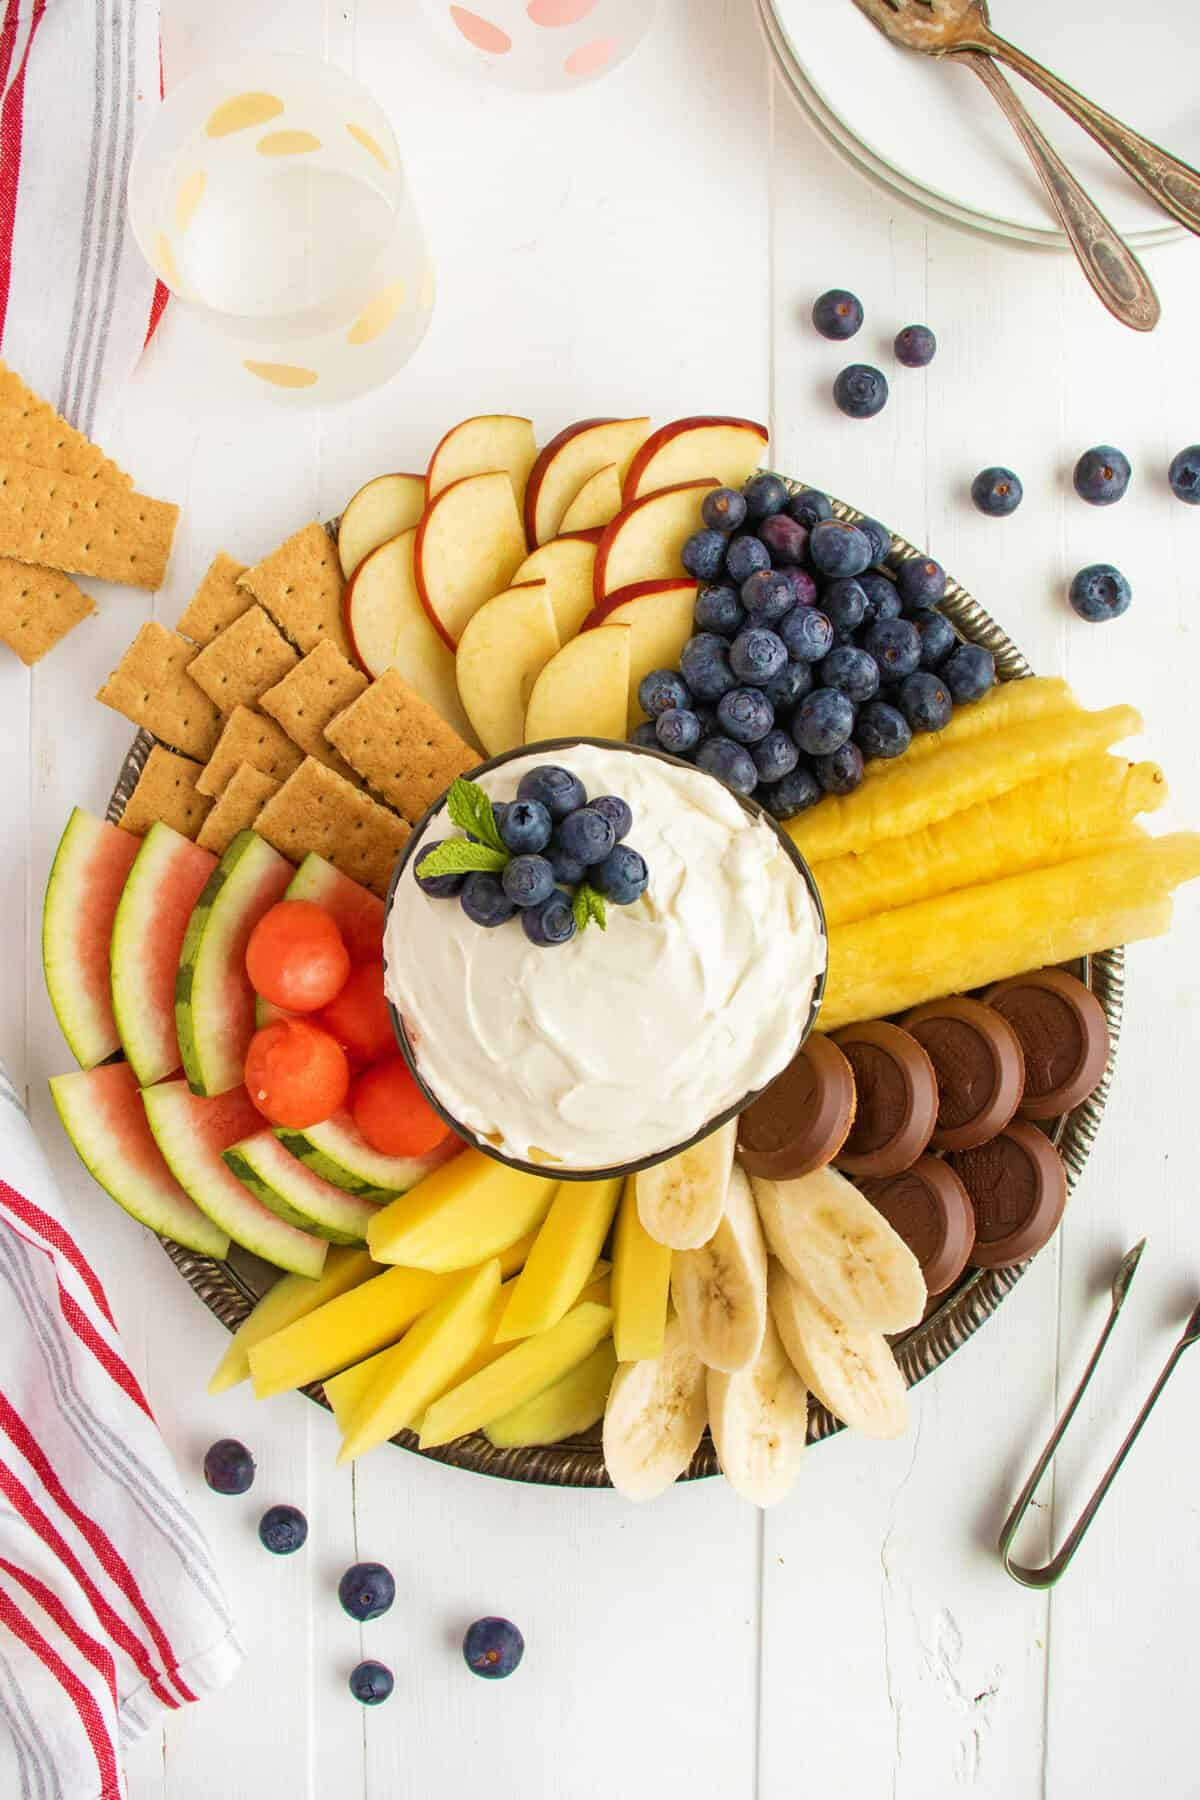 cream cheese dip topped with blueberries and surrounded by fruit and cookies